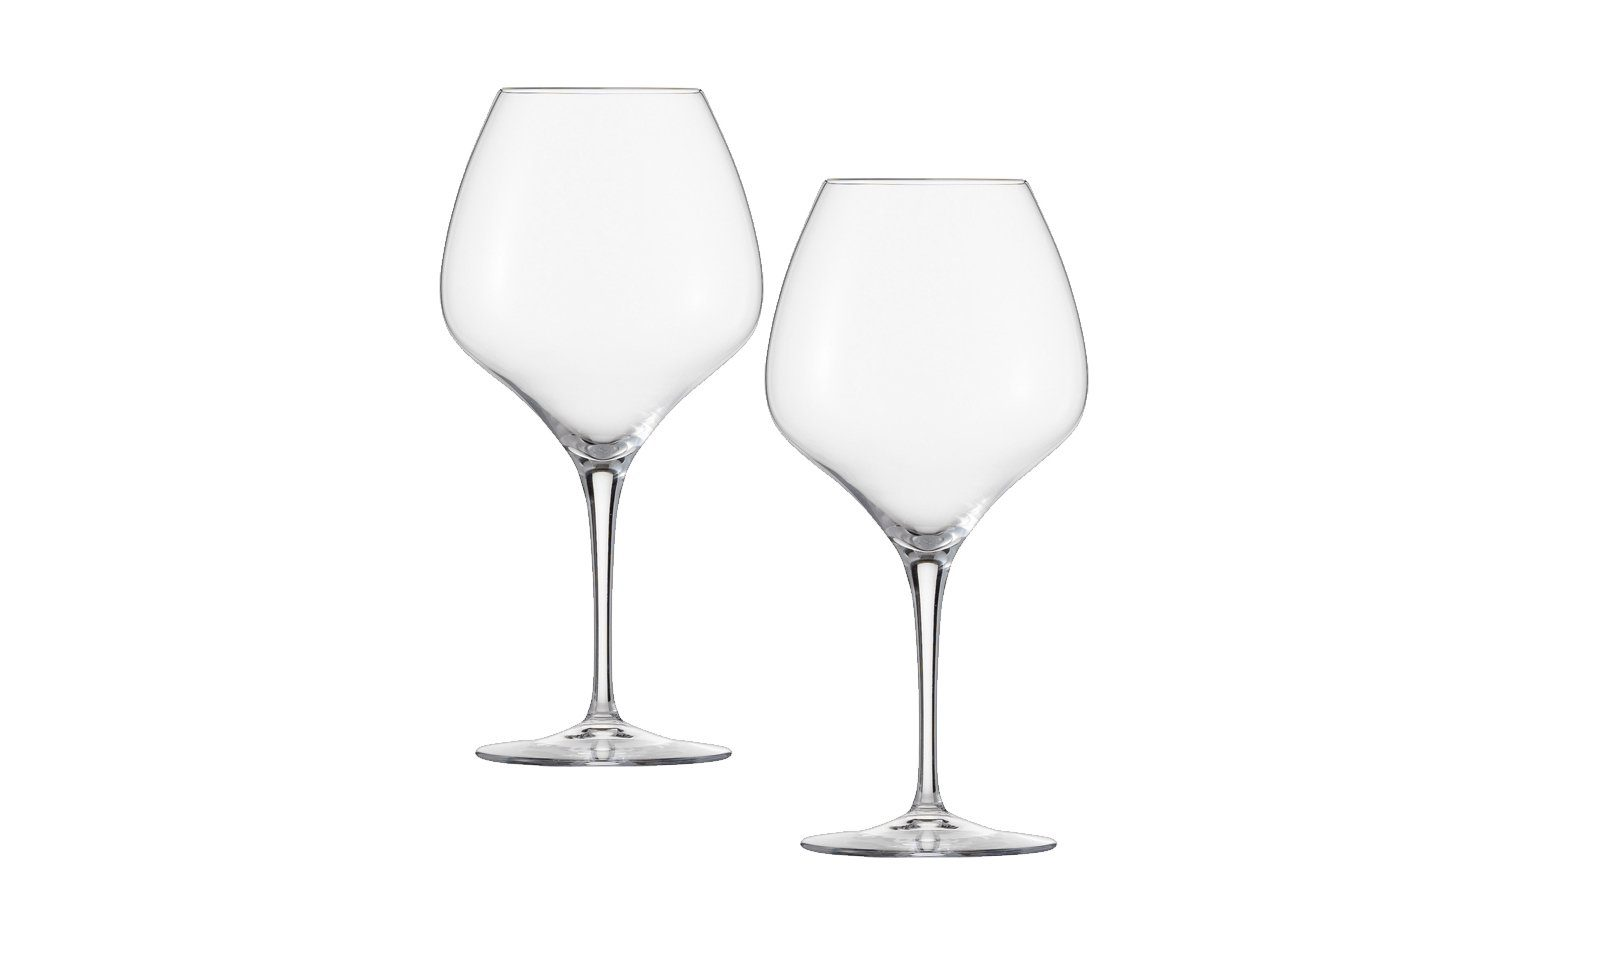 Zwiesel 1872 Grauburgunder Glas 2er-Set »The First«